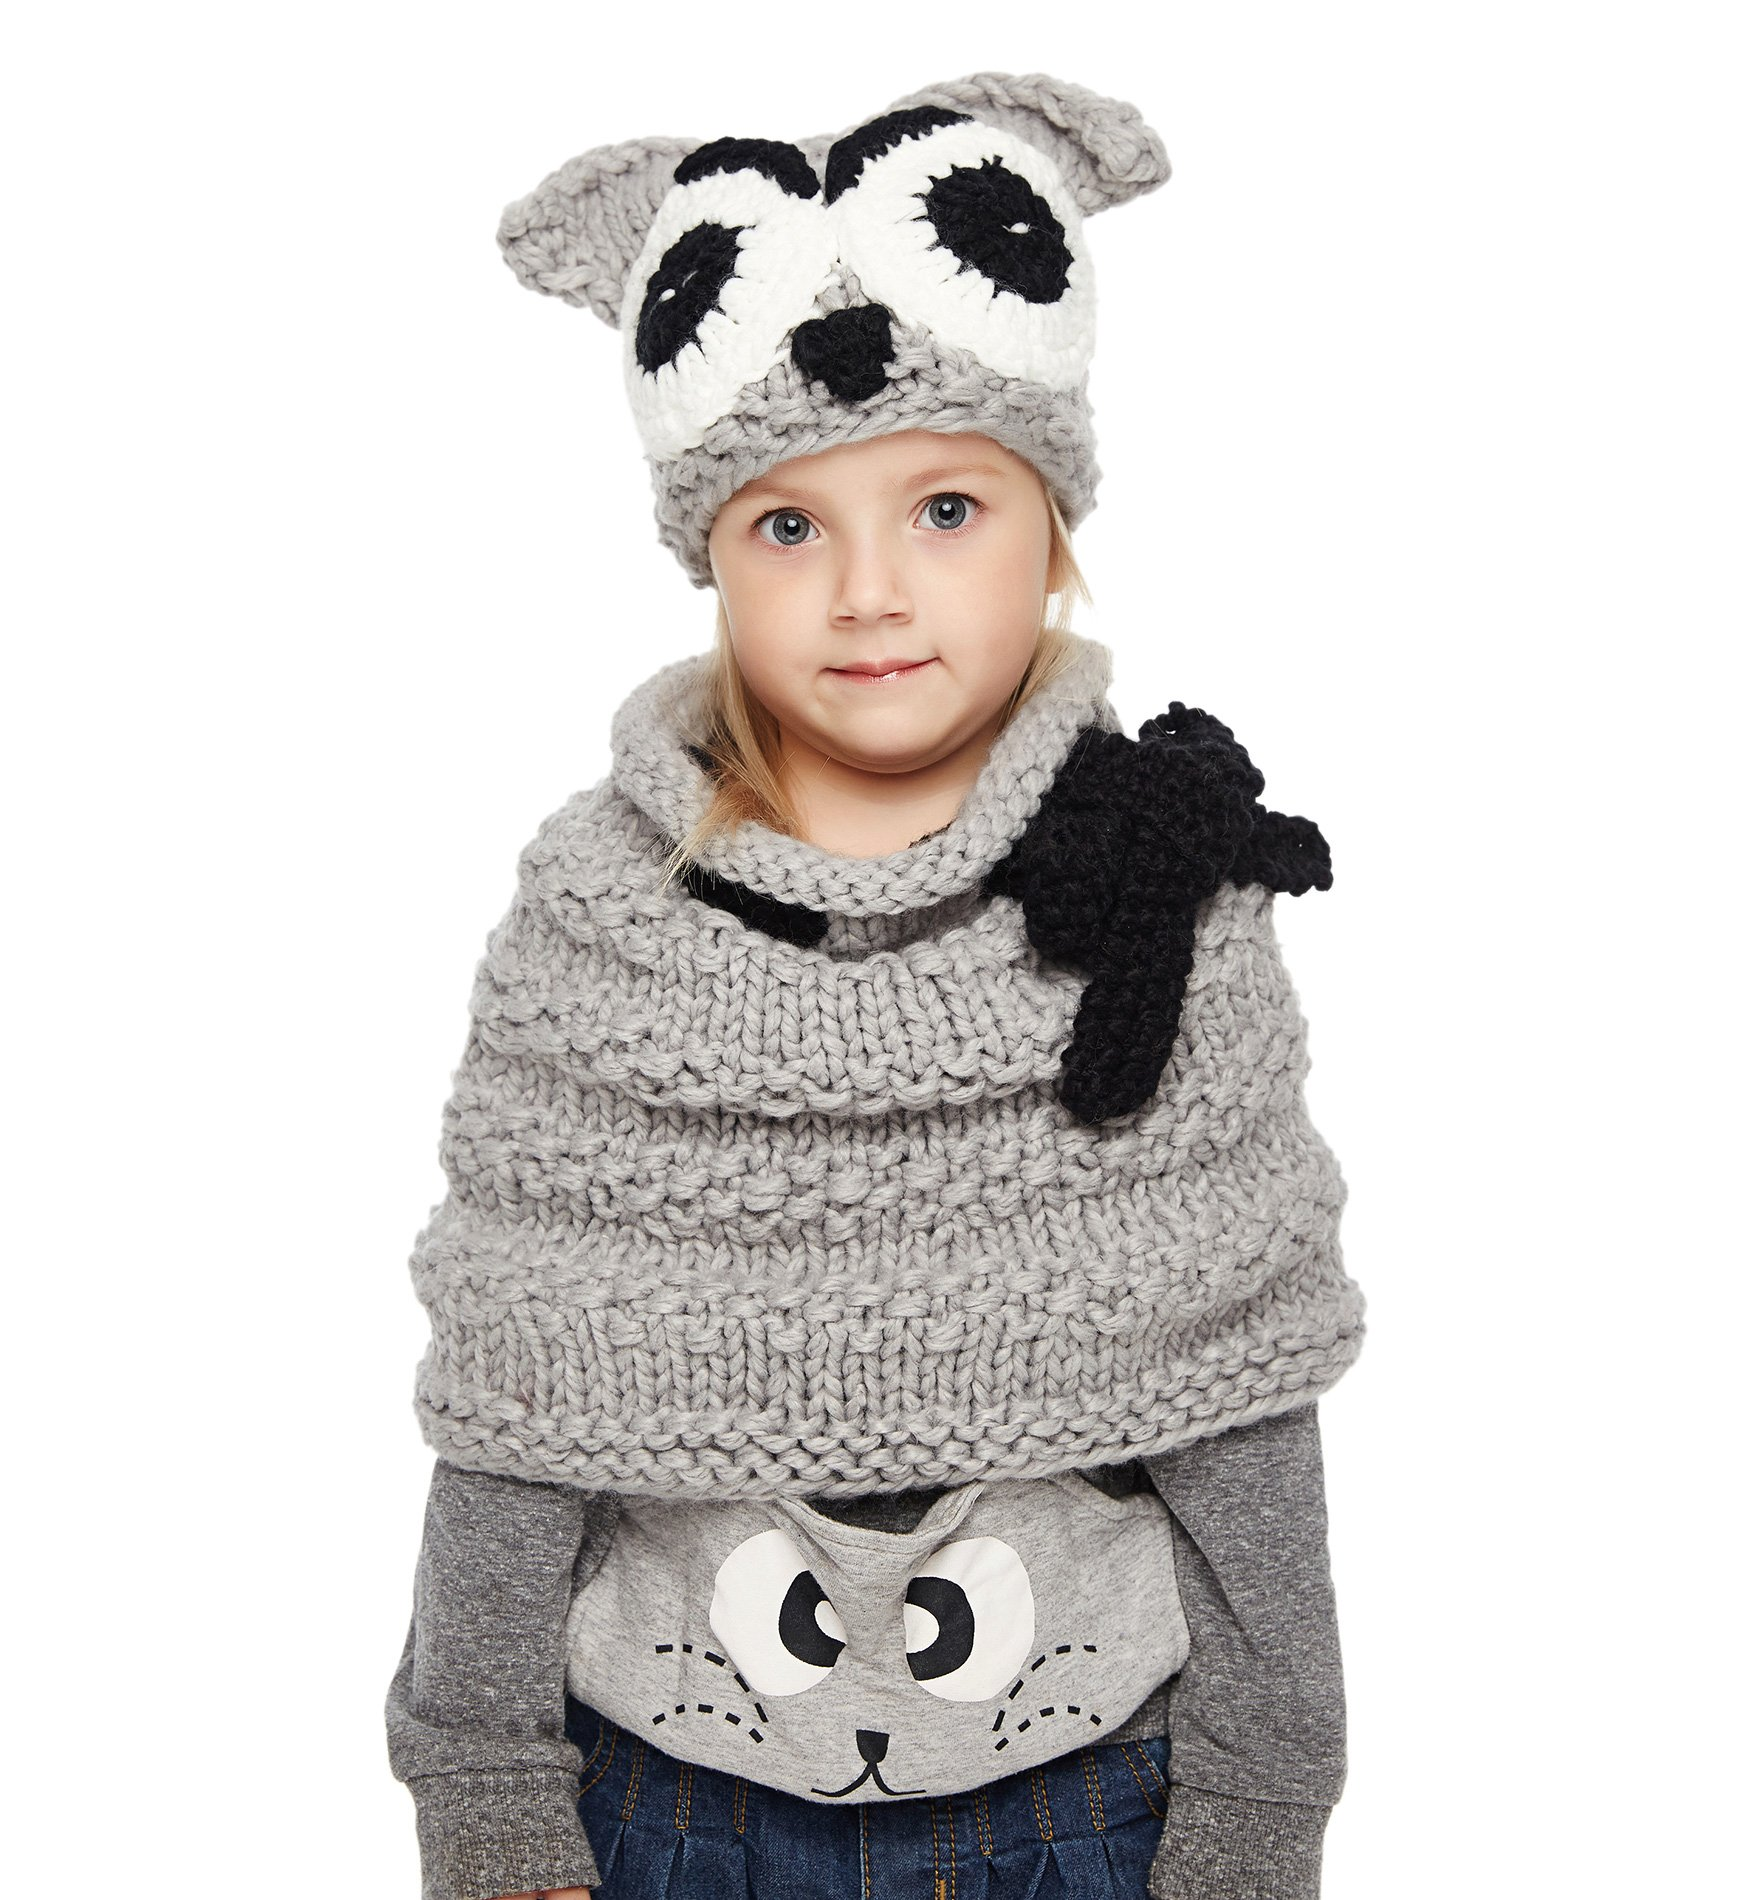 Sumolux Girls Kids Warm Owl Hats and Scarf Set Knitted Coif Hood/Shawl Beanies for Winter by Sumolux (Image #4)